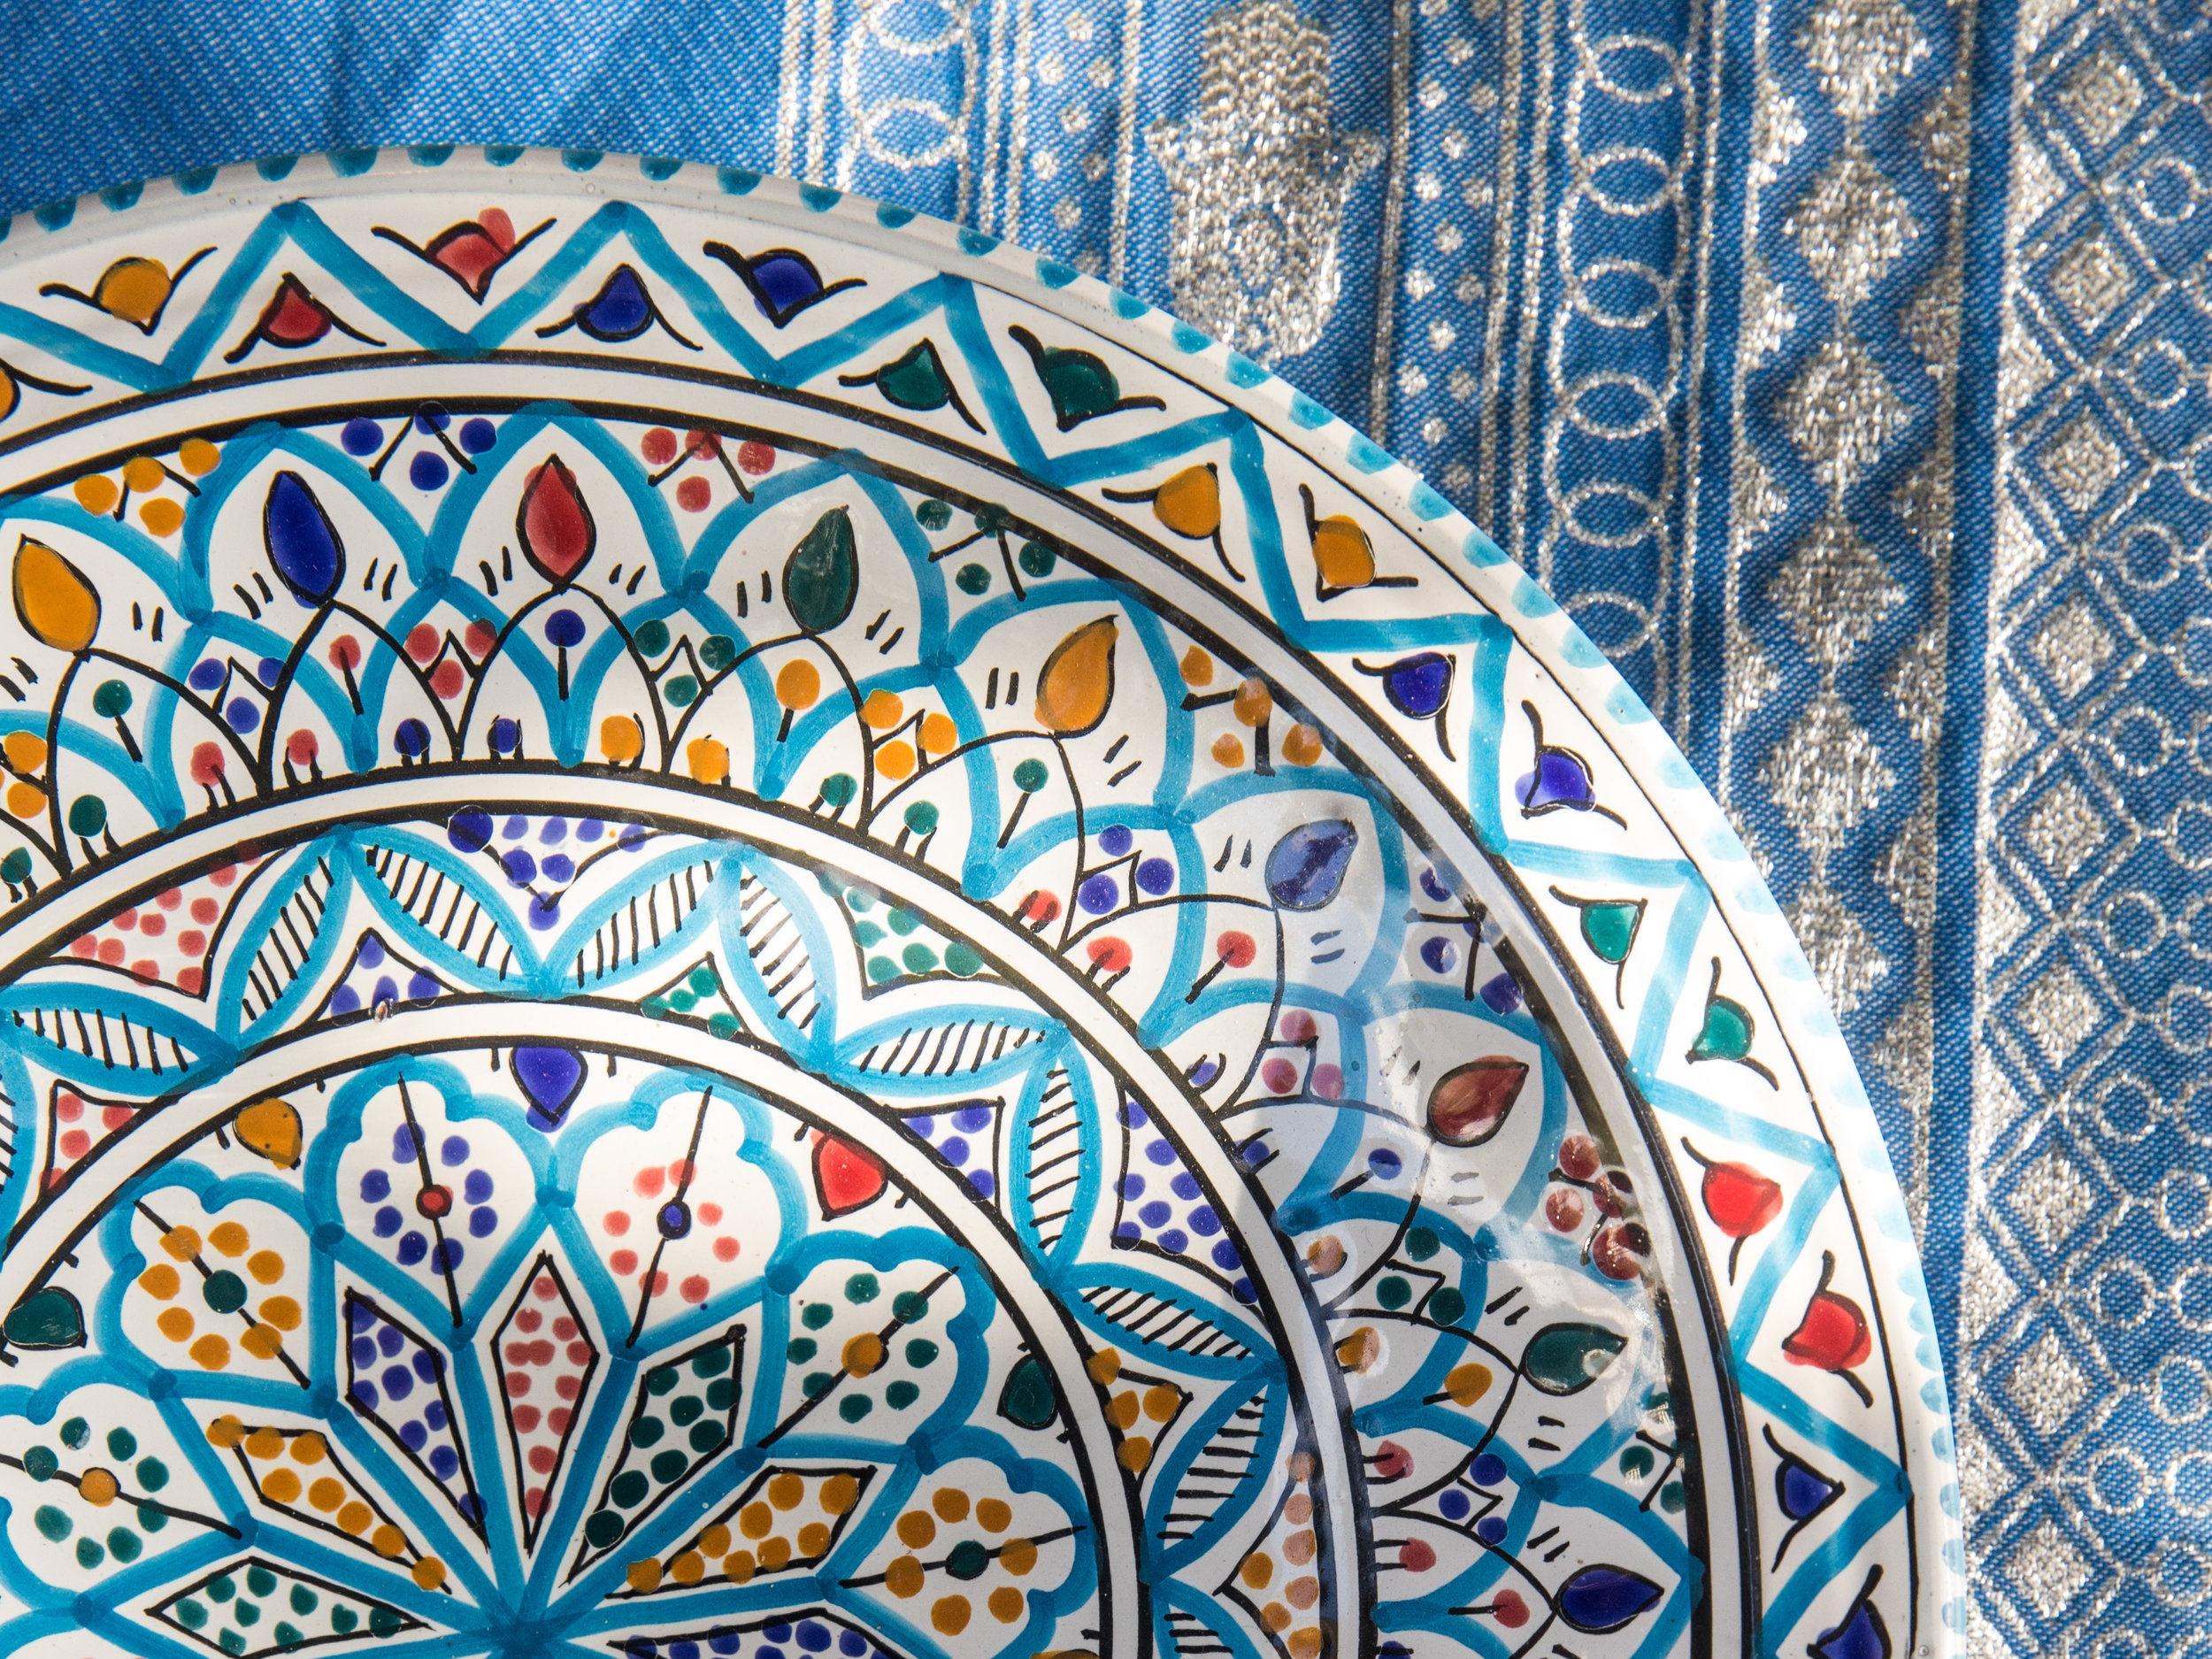 - Sidi Bou15th and 22nd DecemberTraditional and custom made Tunisian art, ceramics, plates, cups, tajines among other things. Make a statement on your Christmas table this year!